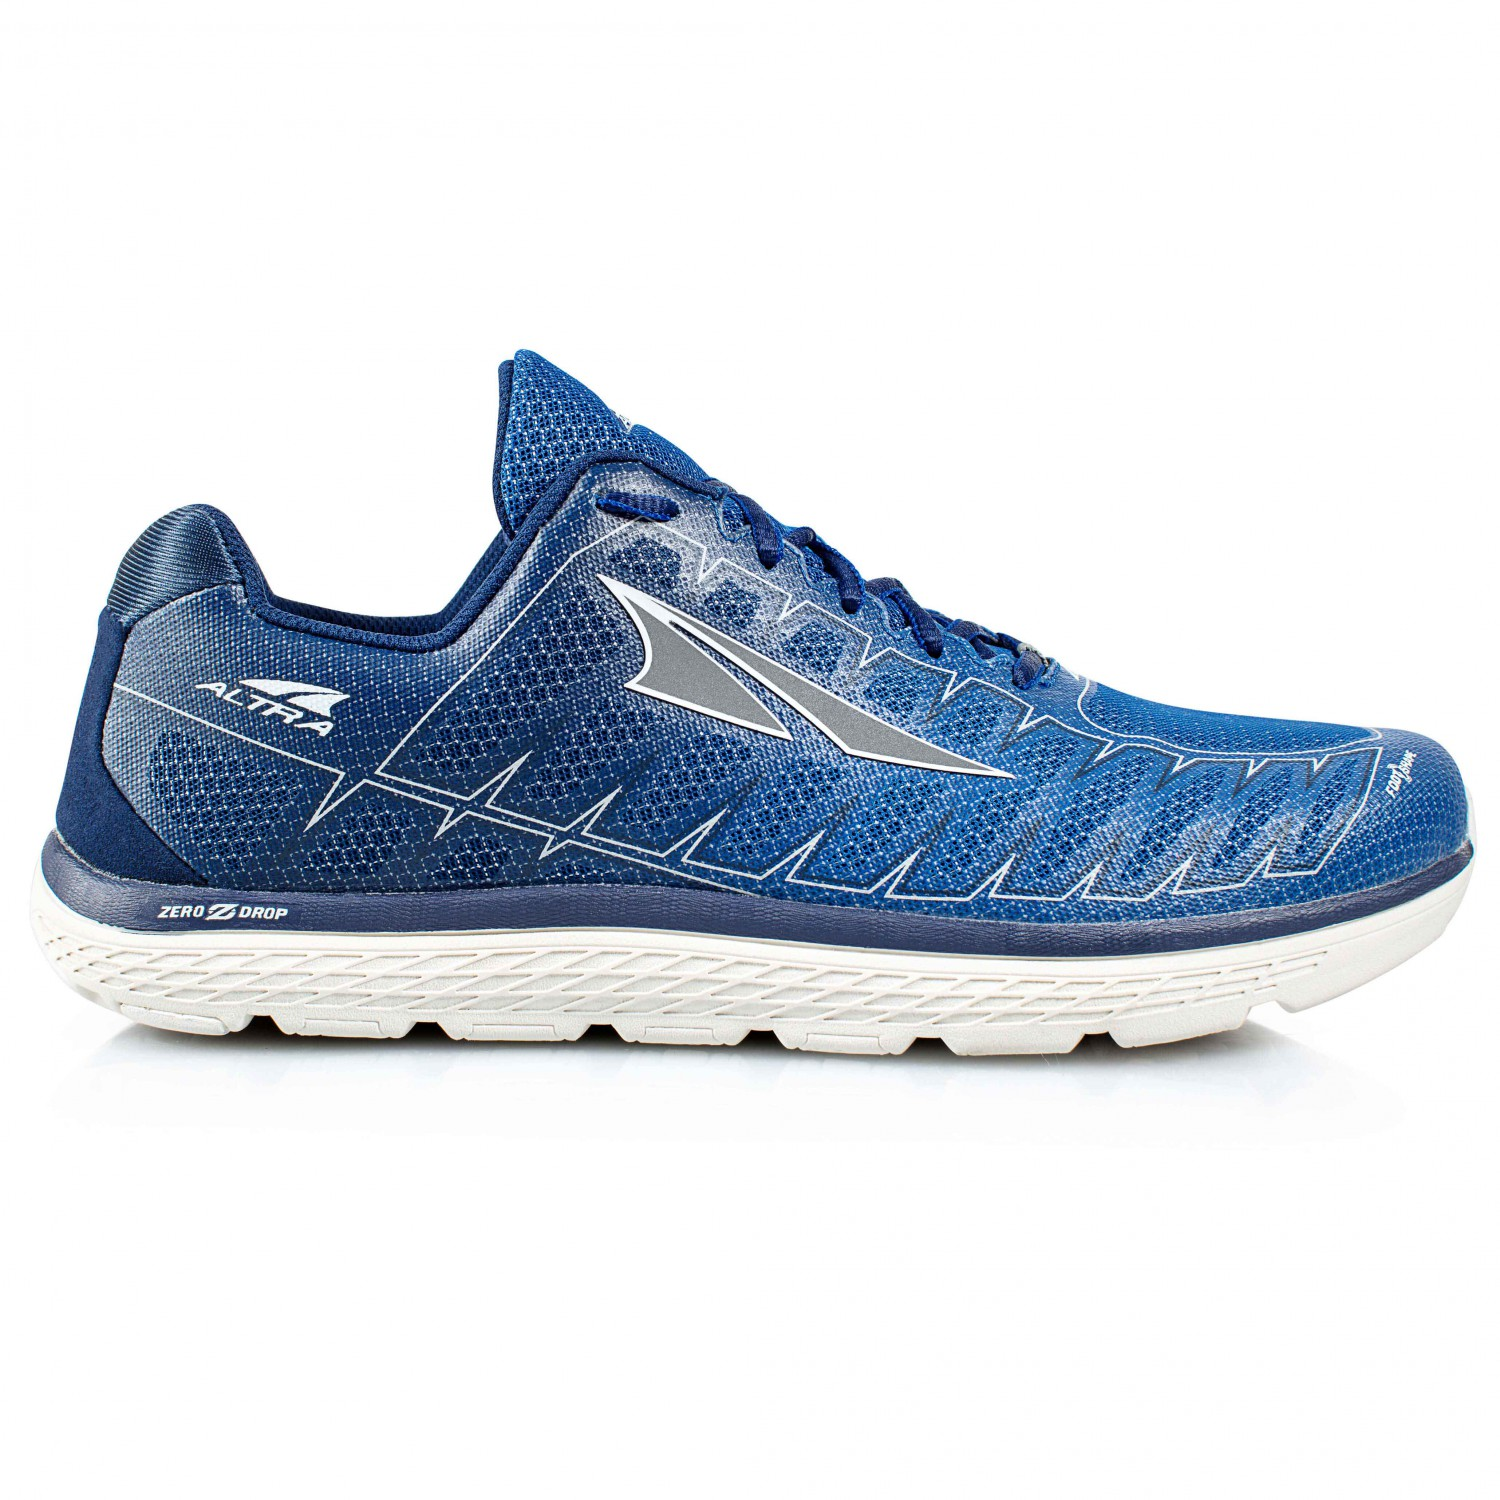 Altra - One V3 - Runningschuhe Blue / Gray